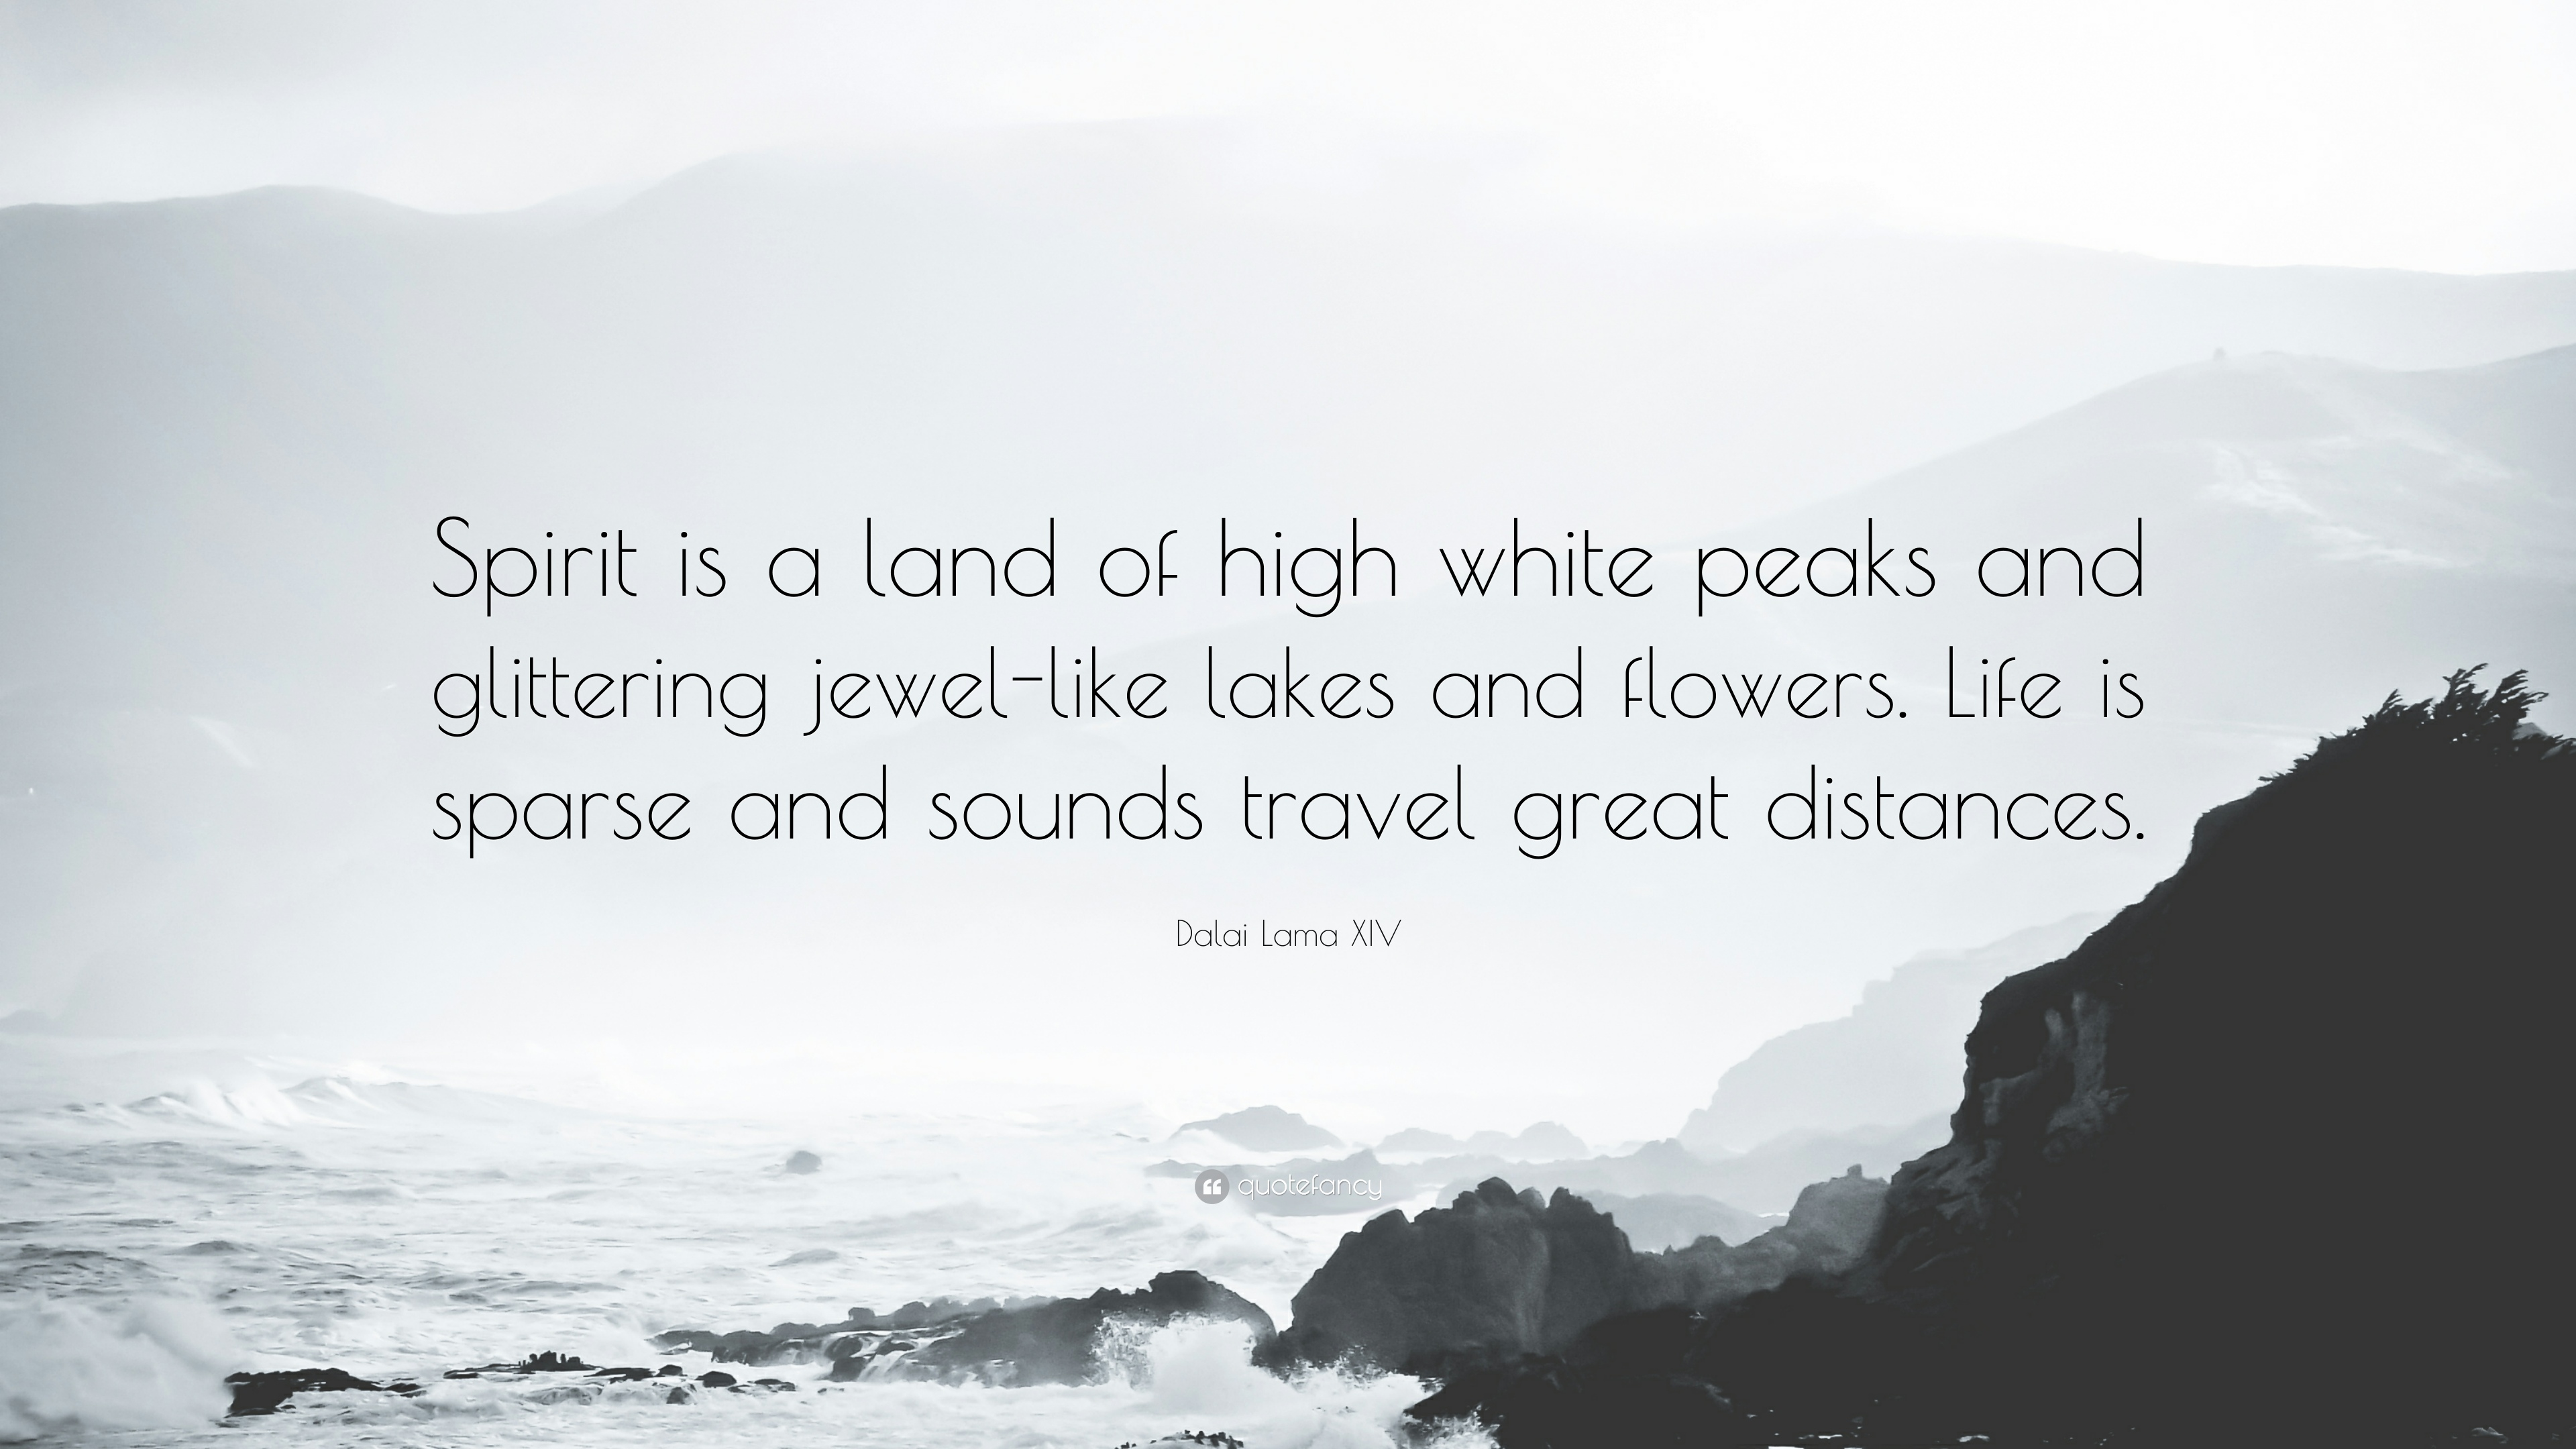 Dalai Lama Xiv Quote Spirit Is A Land Of High White Peaks And